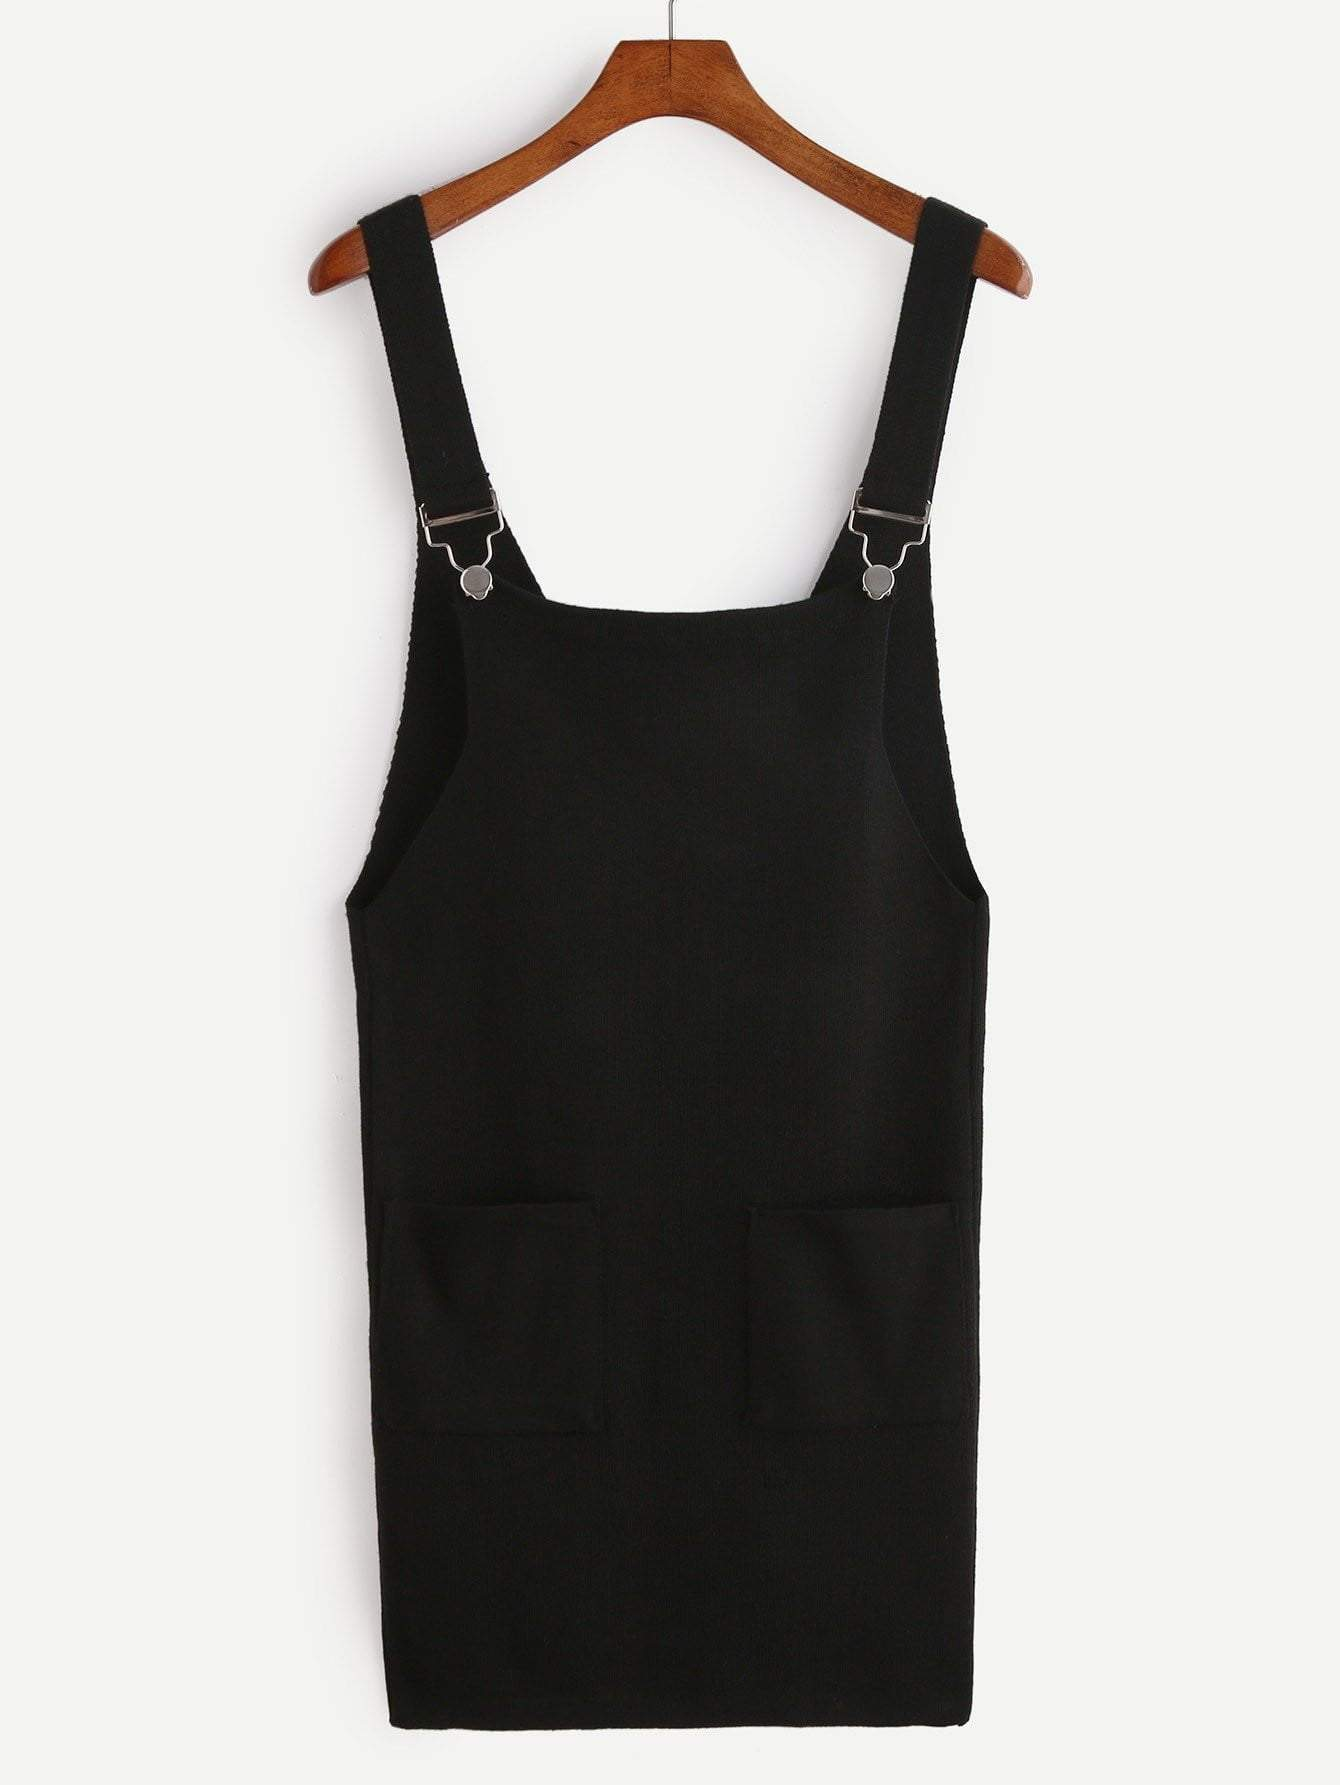 Black Knit Overall Dress With Pockets - Dresses - Zooomberg - Zoomberg